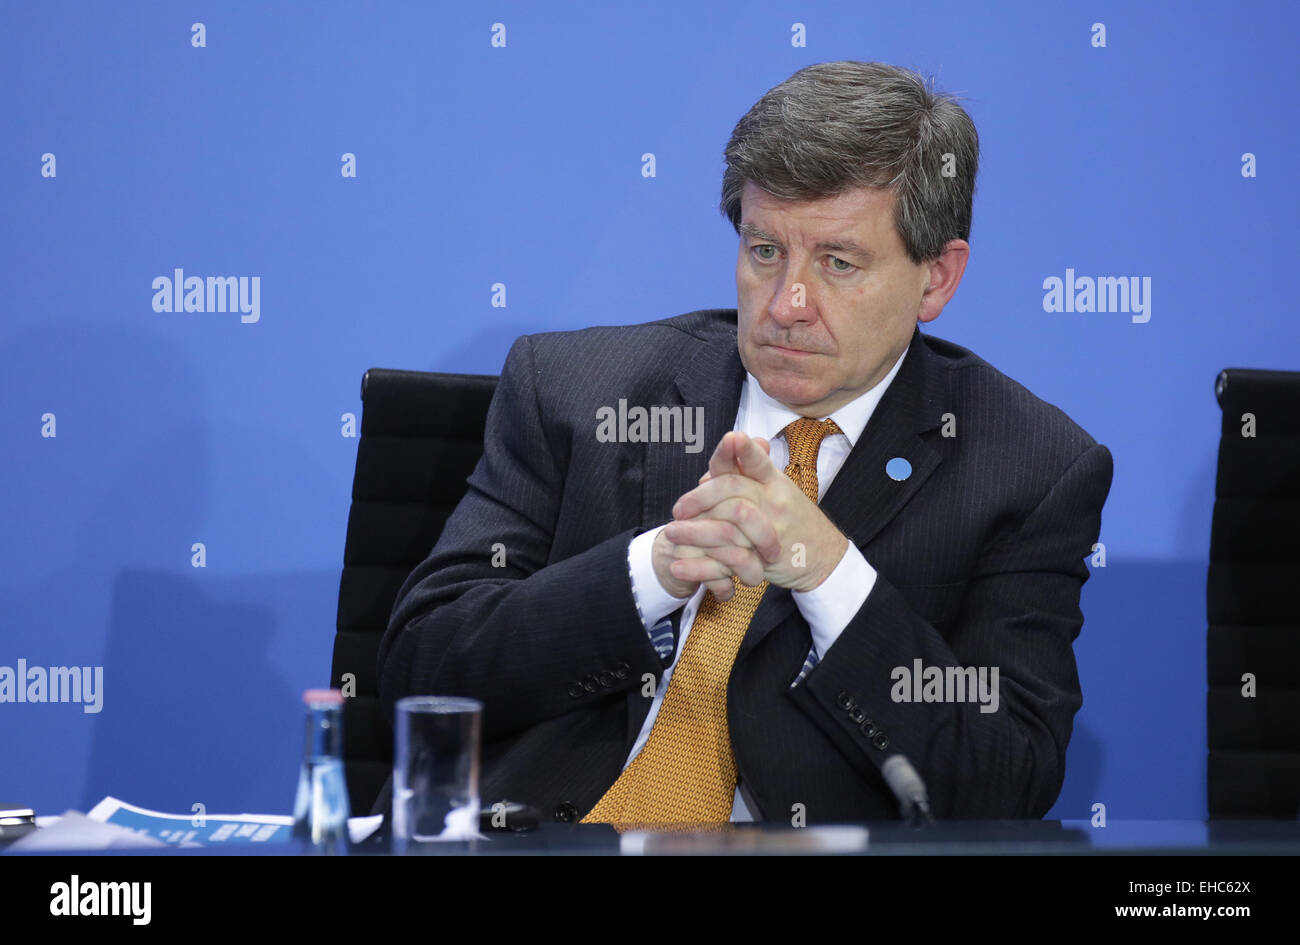 Berlin, Germany. 11th March, 2015. Guy Ryder, Director-General of the International Labour Organization (ILO) (background - Stock Image